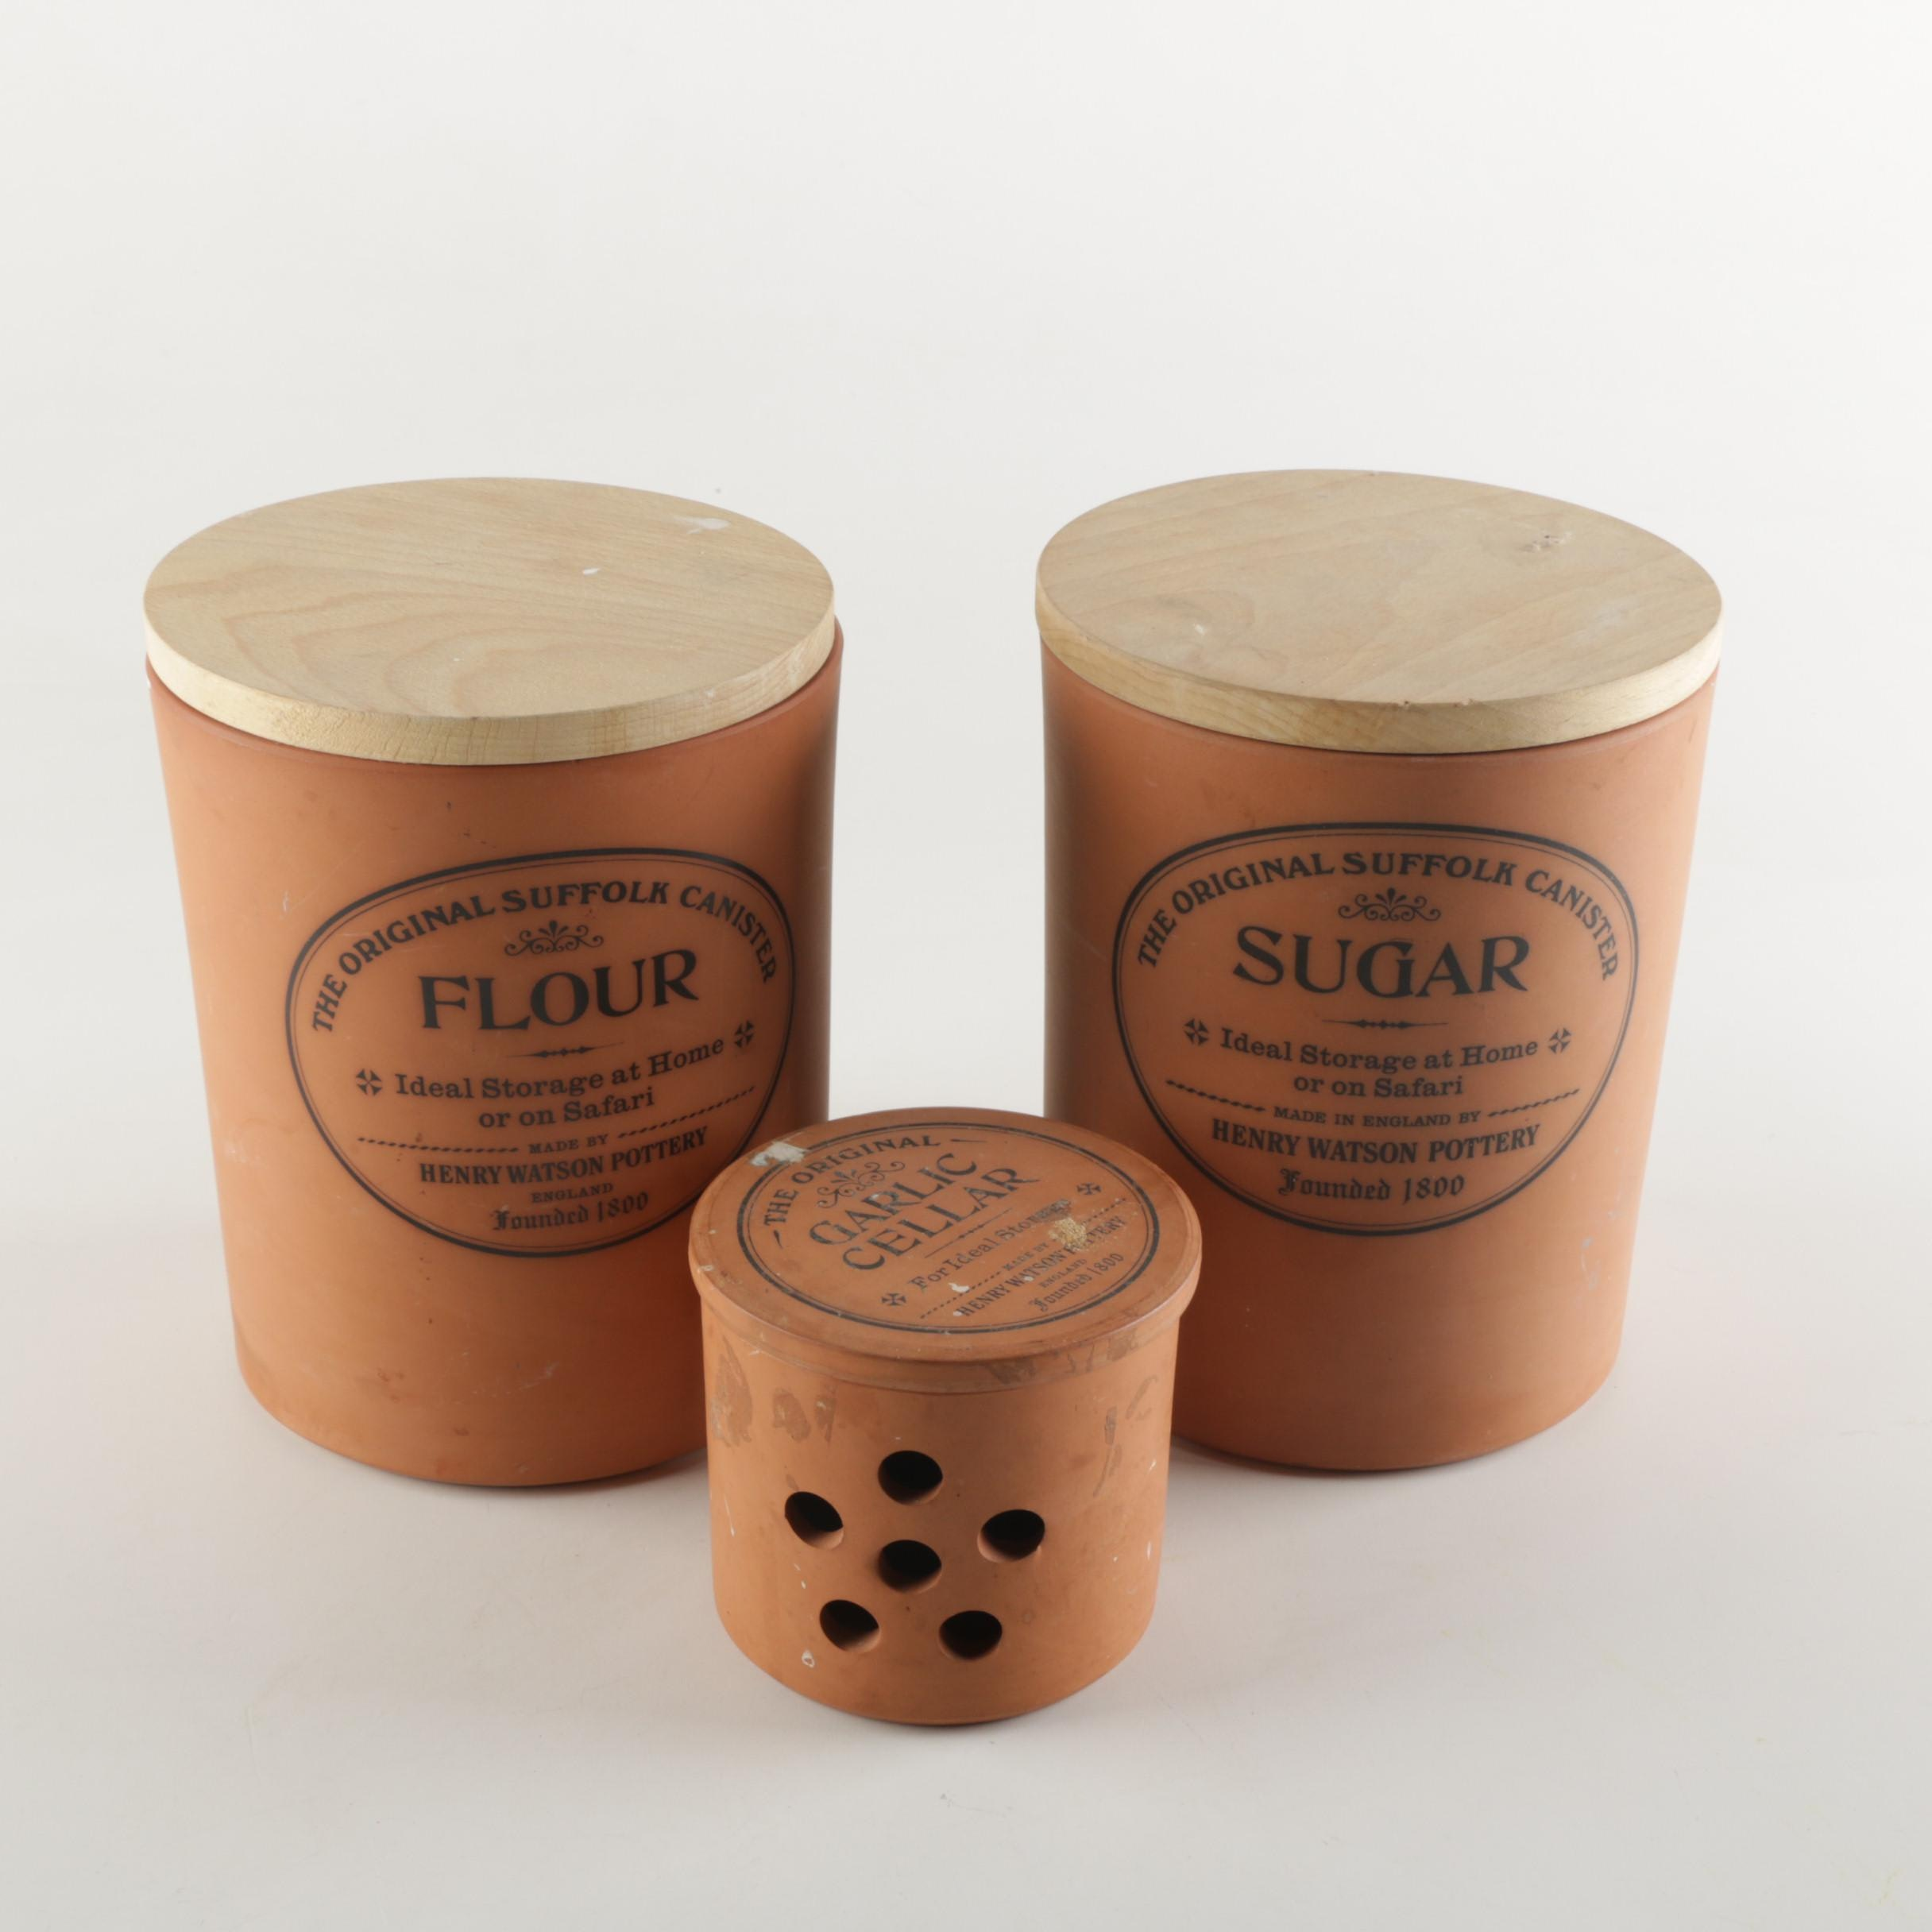 Terracotta Canisters from Henry Watson Pottery